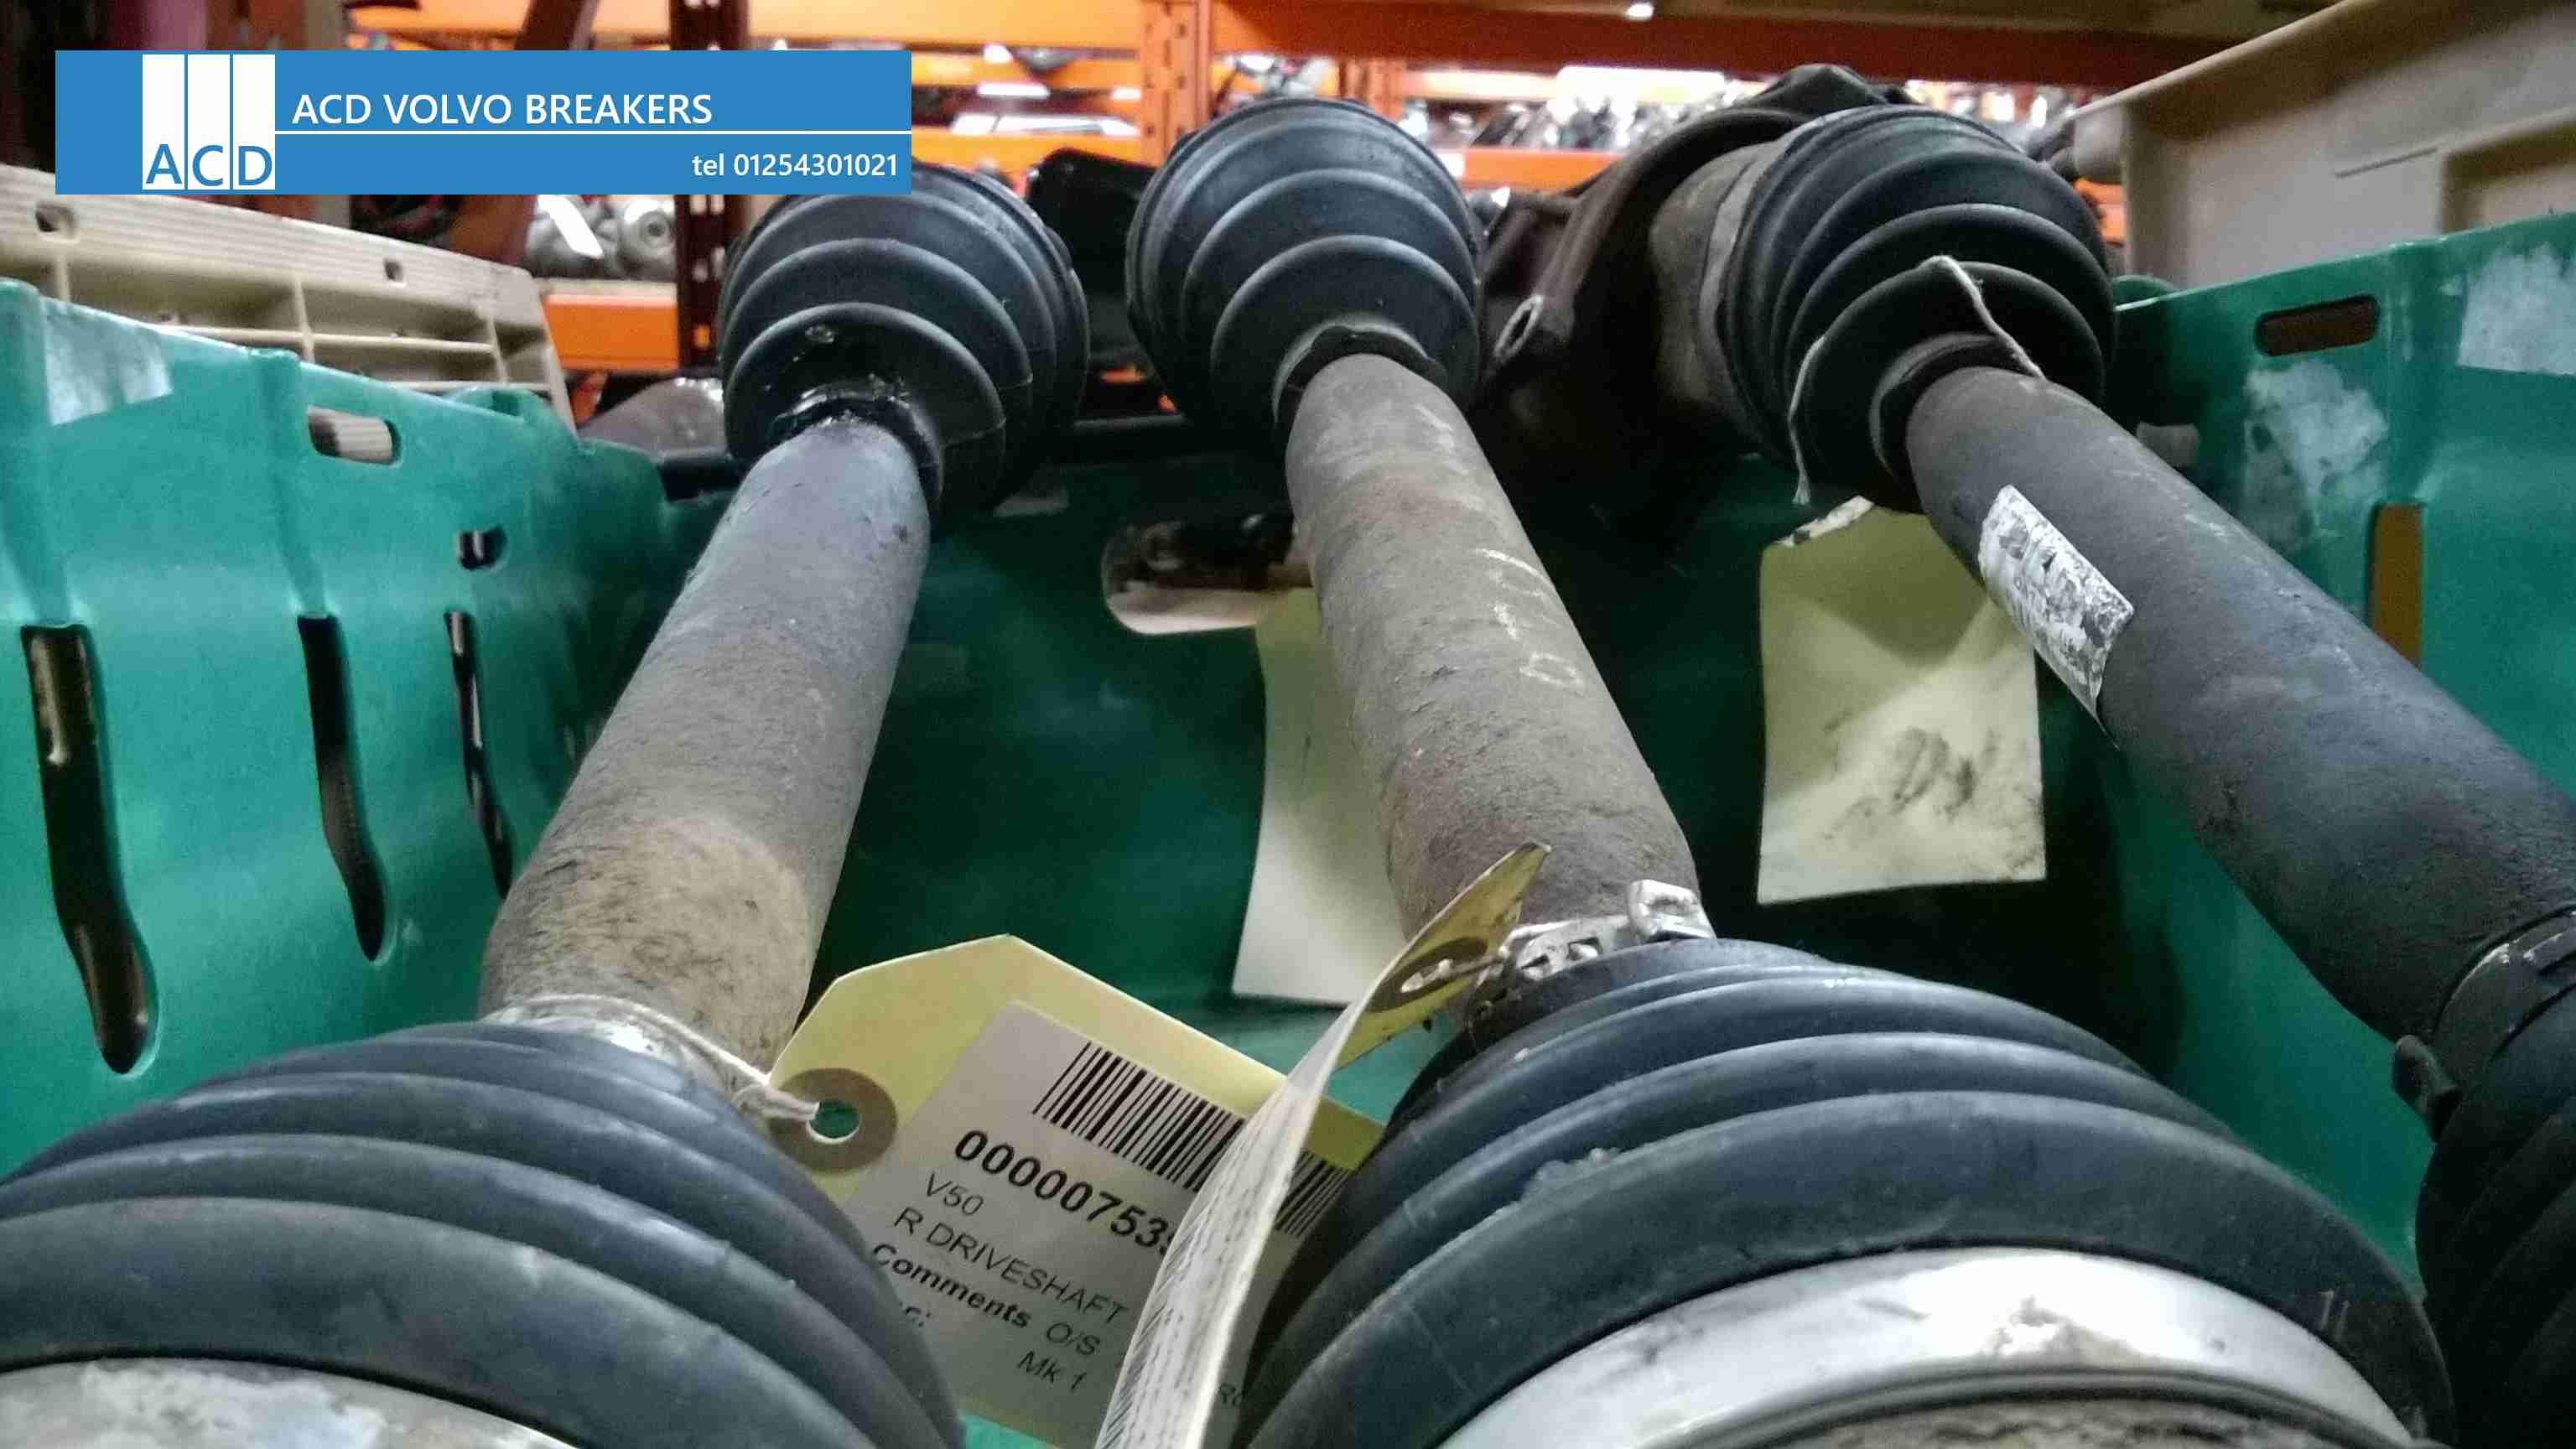 Used Volvo parts drive shaft ACD Volvo Breakers ACD Volvo BreakersUsed Volvo parts from ACD Volvo breakers for quality used Volvo parts.